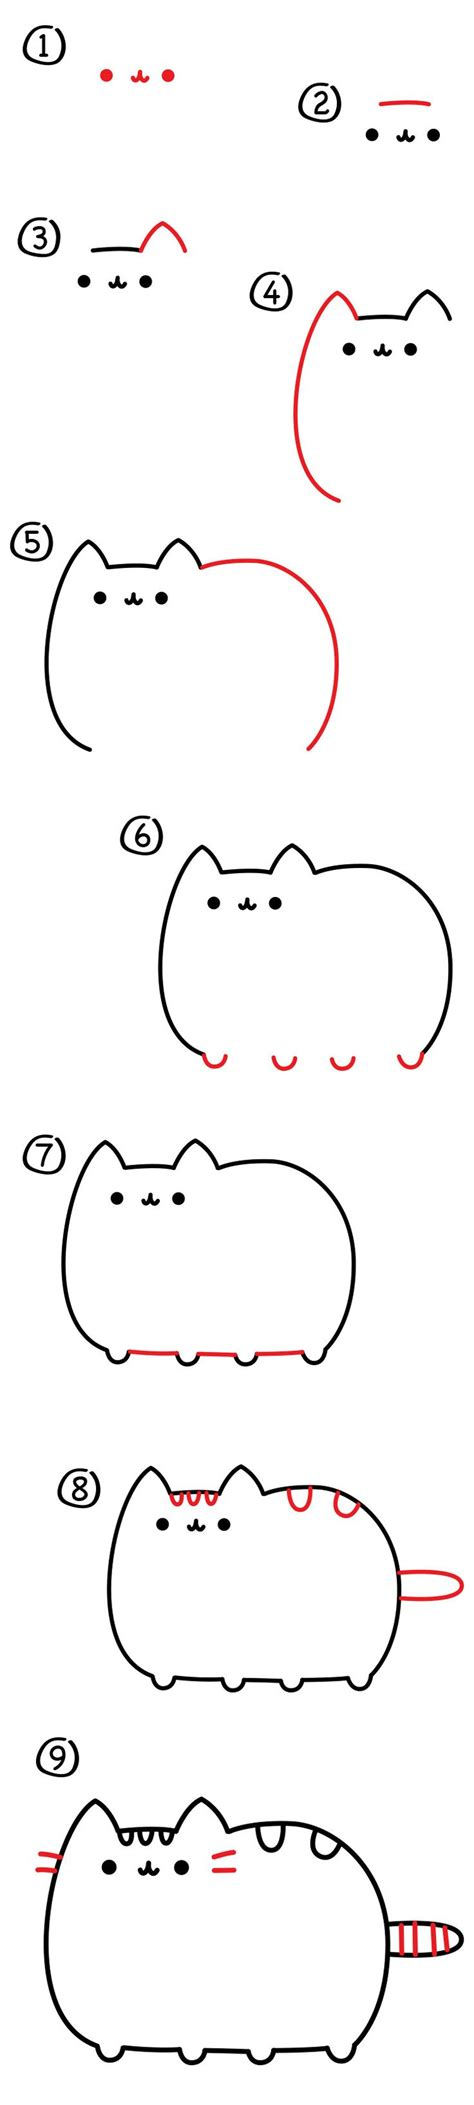 kawaii drawings ideas  pinterest kawaii